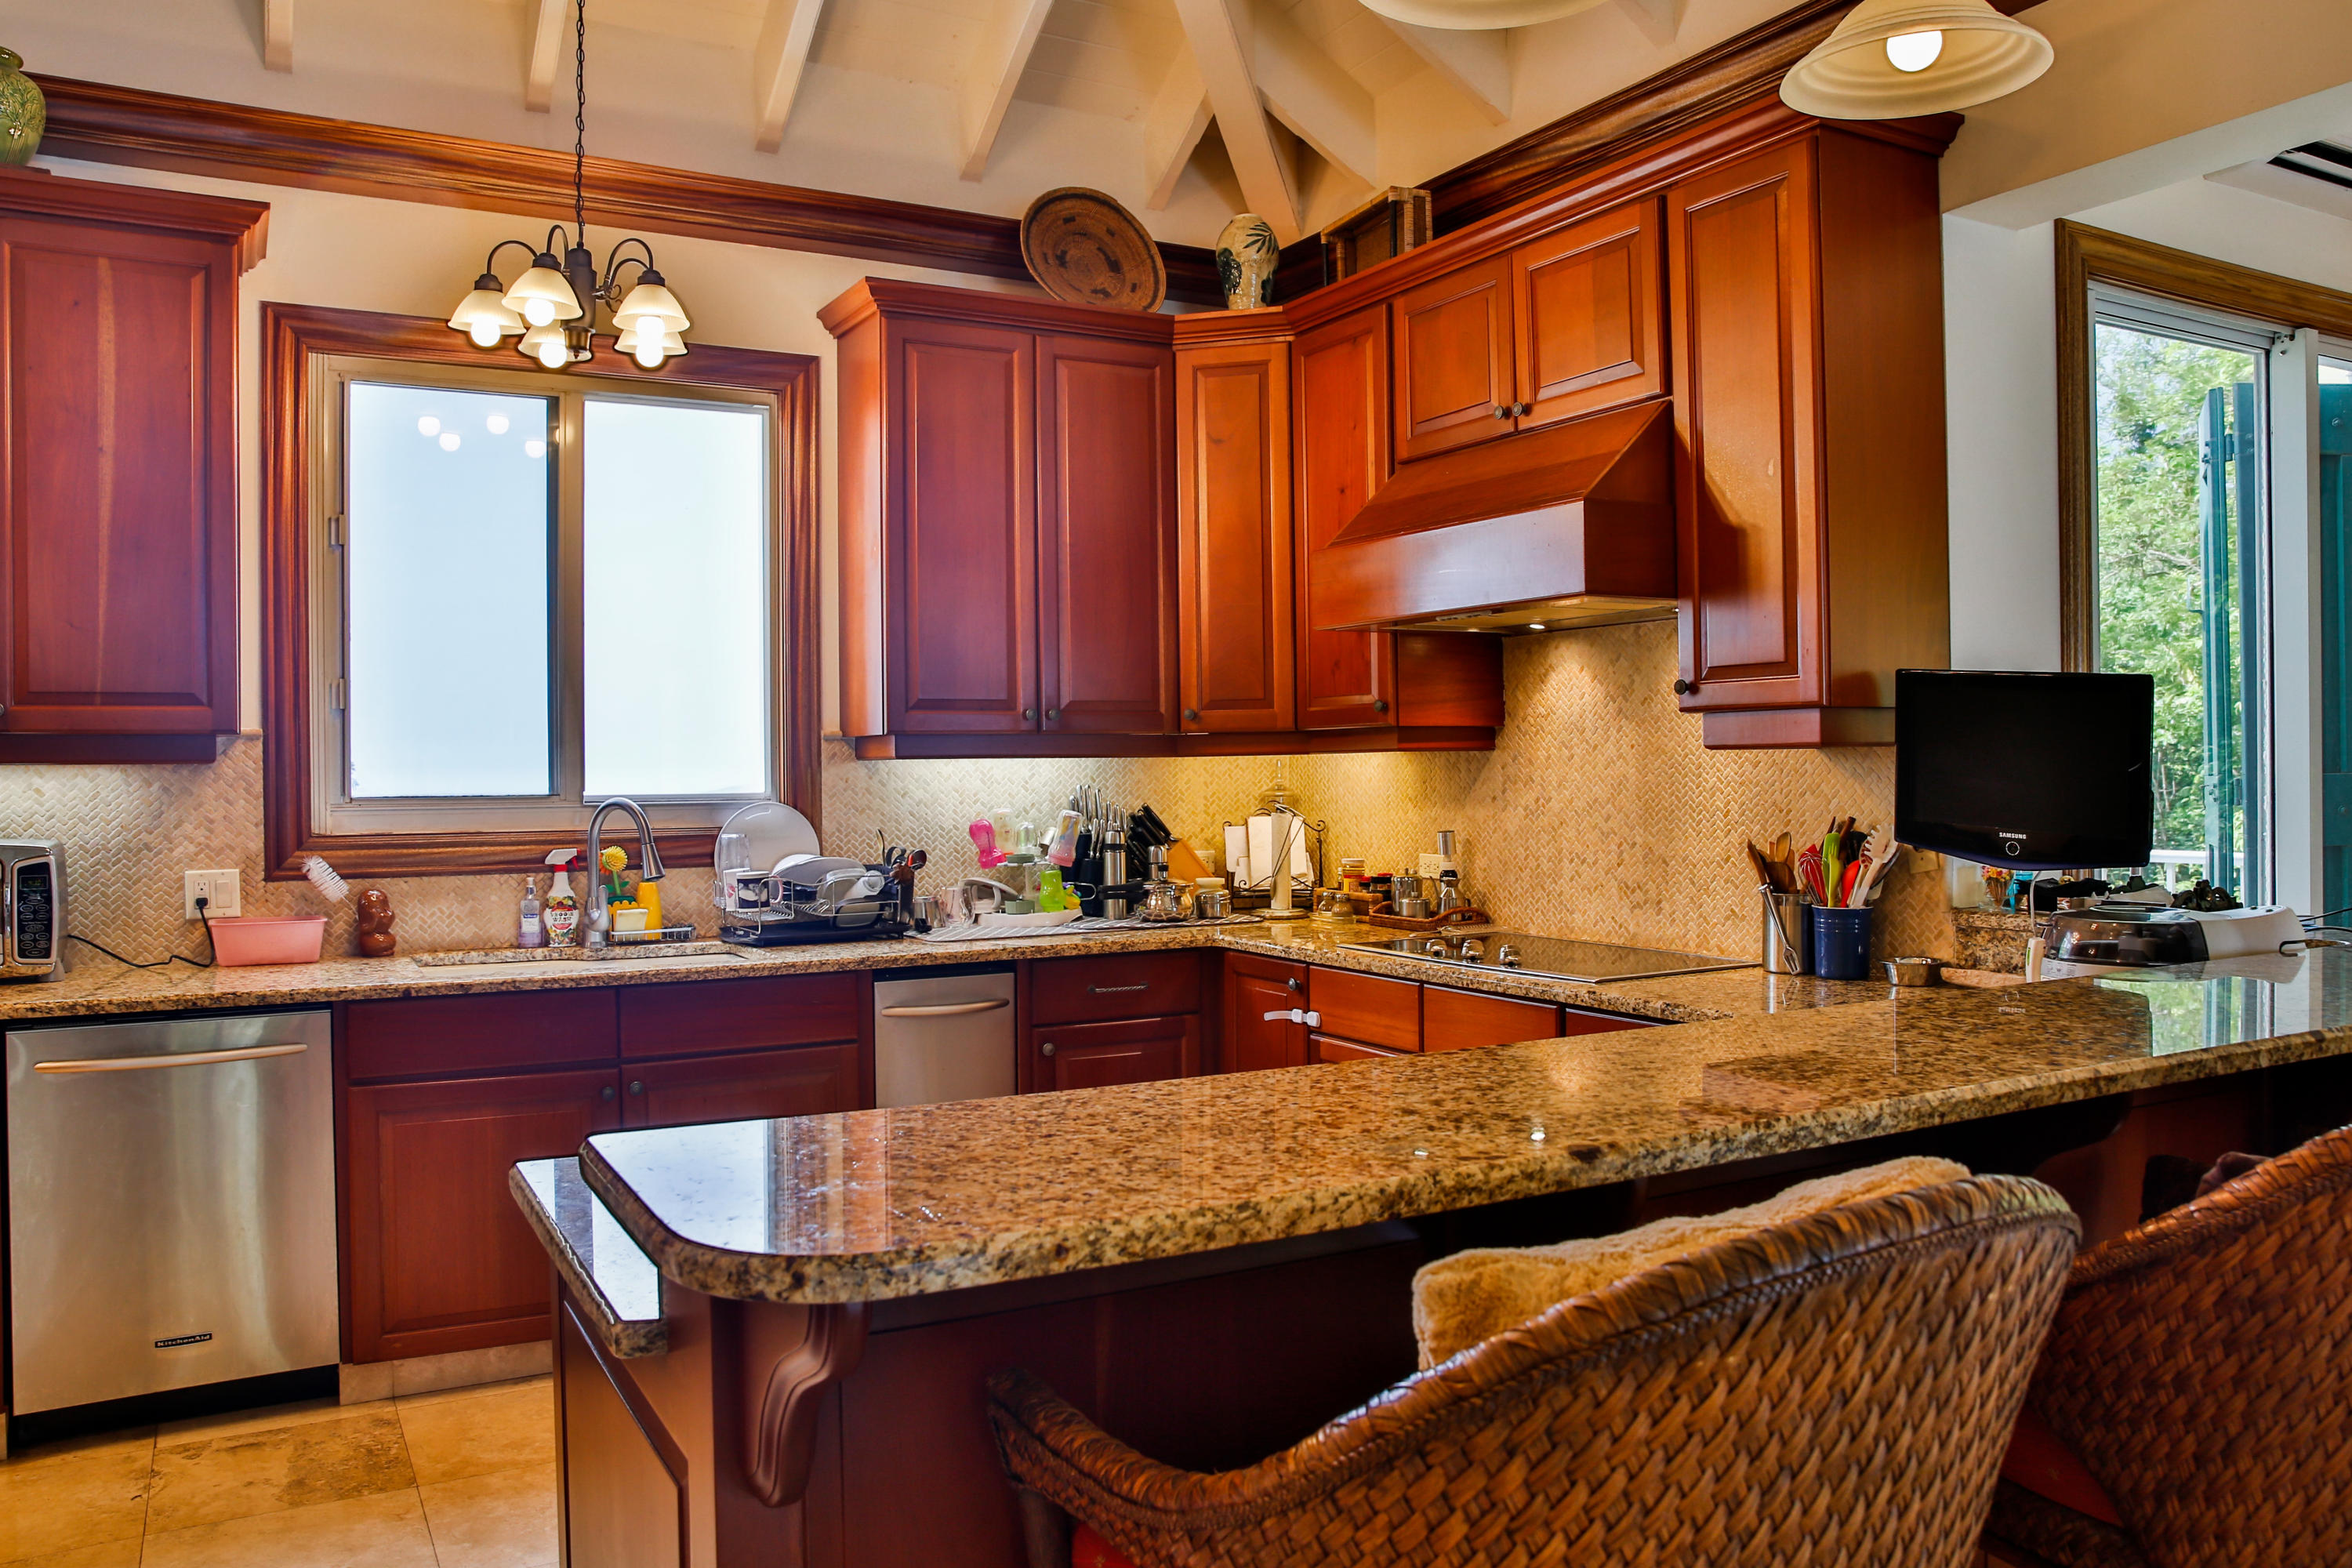 Wooden Cabinets in well equipped kitchen